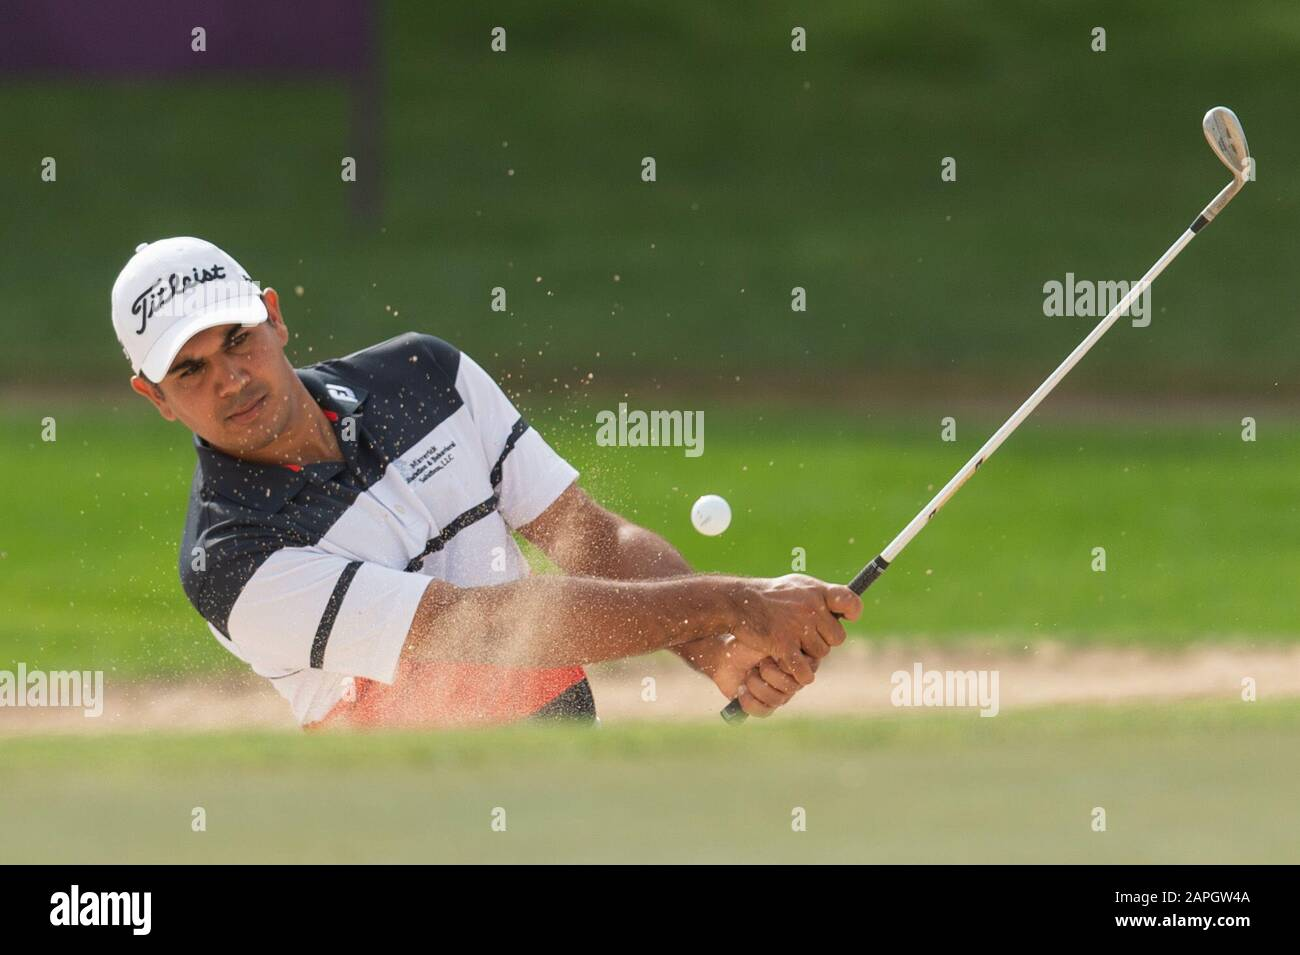 Indian betting games in golf football score betting chart for superbowl